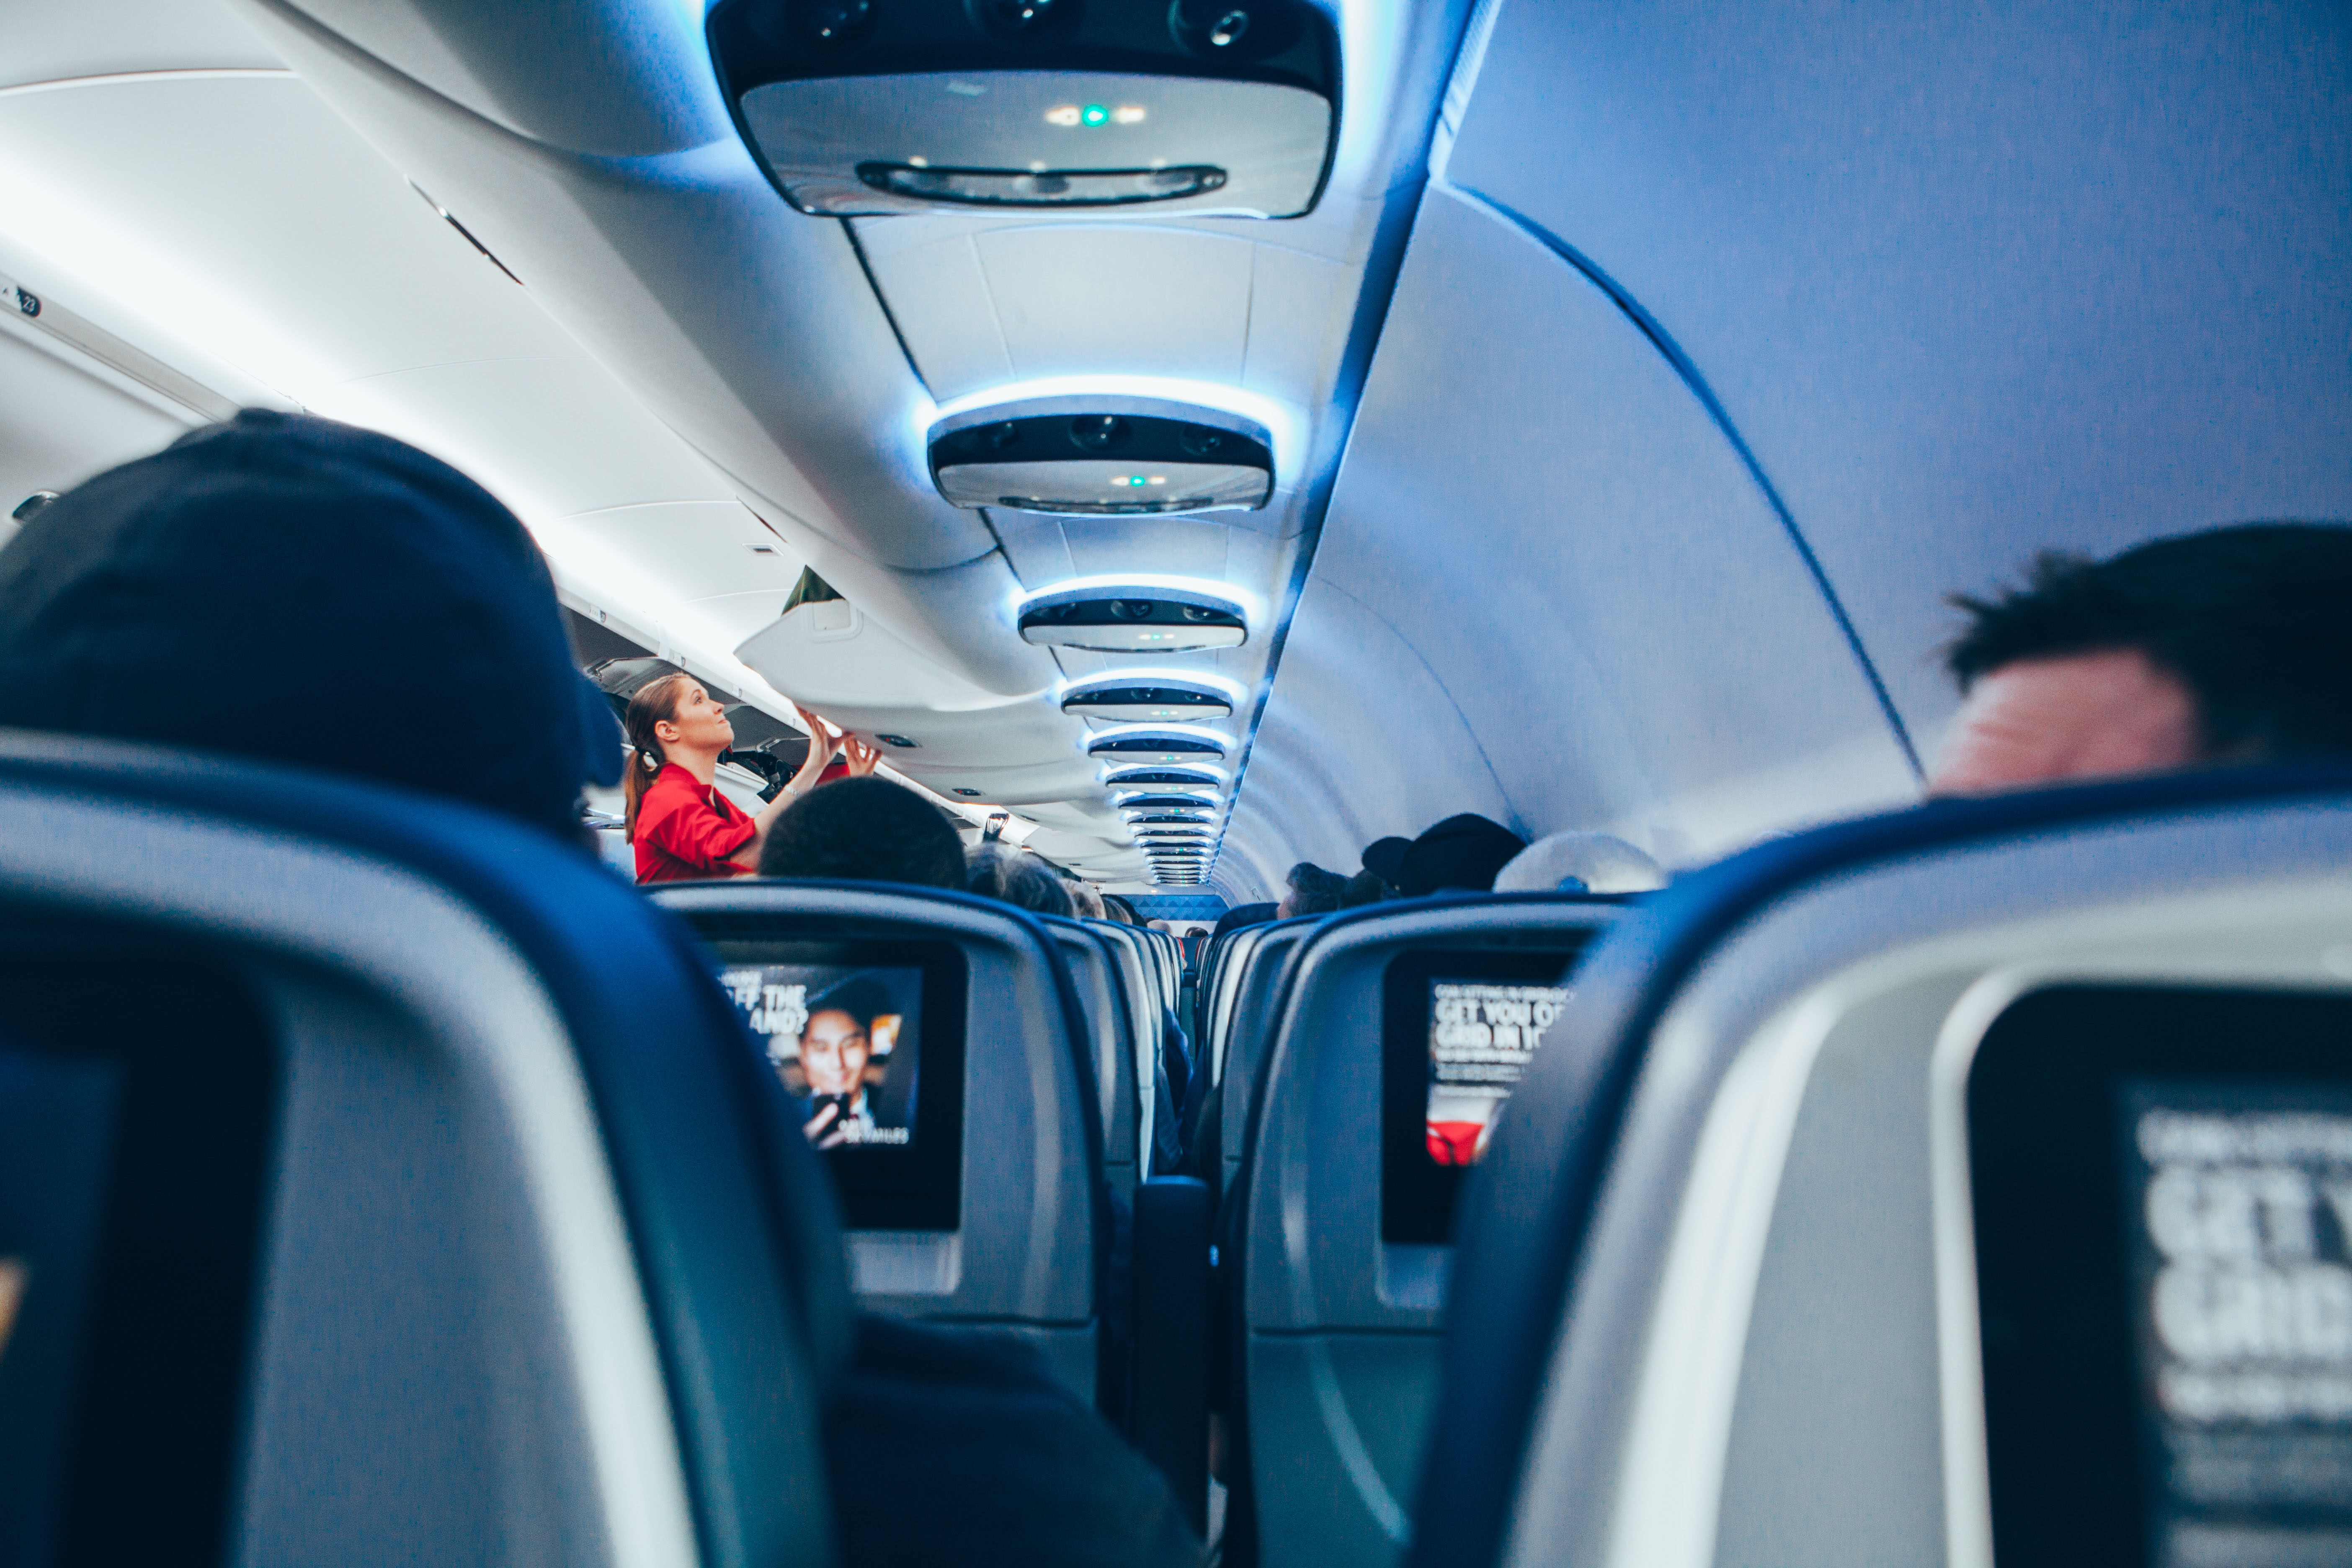 View from the back of a plane on the rows of seats stretching to its nose